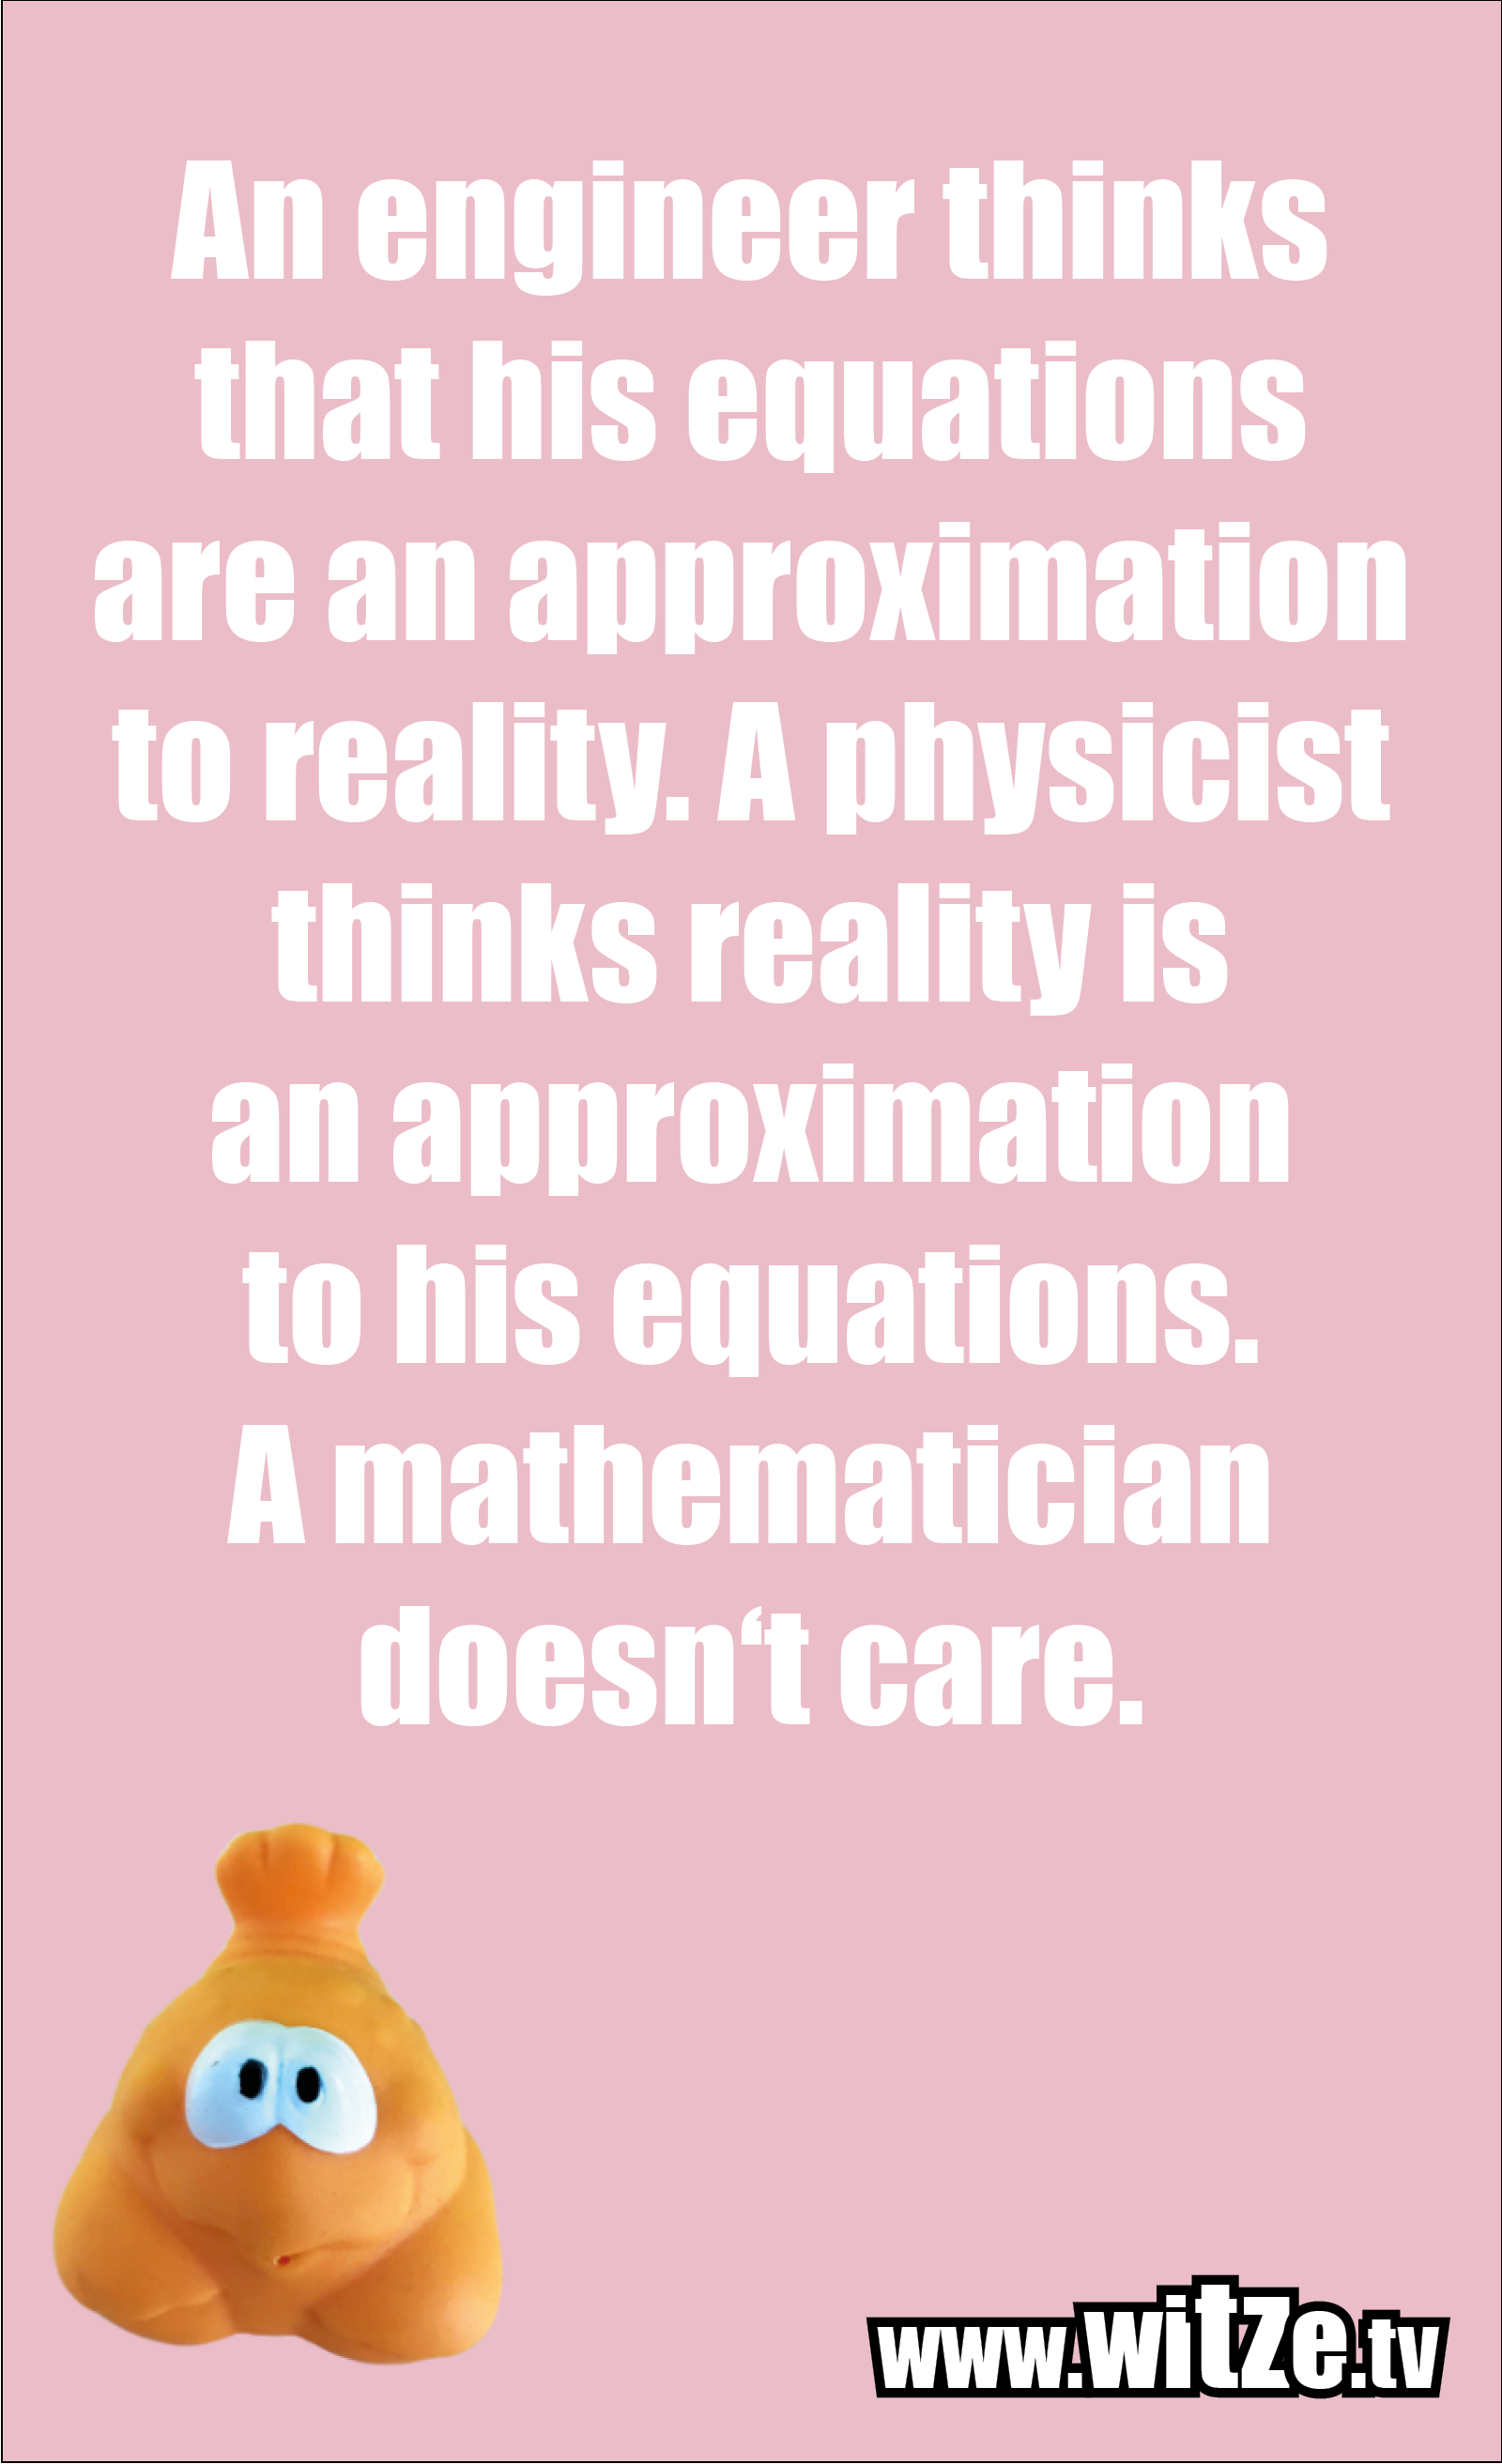 Math joke… An engineer thinks that his equations are an approximation to reality. A physicist thinks reality is an approximation to his equations. A mathematician doesn't care.